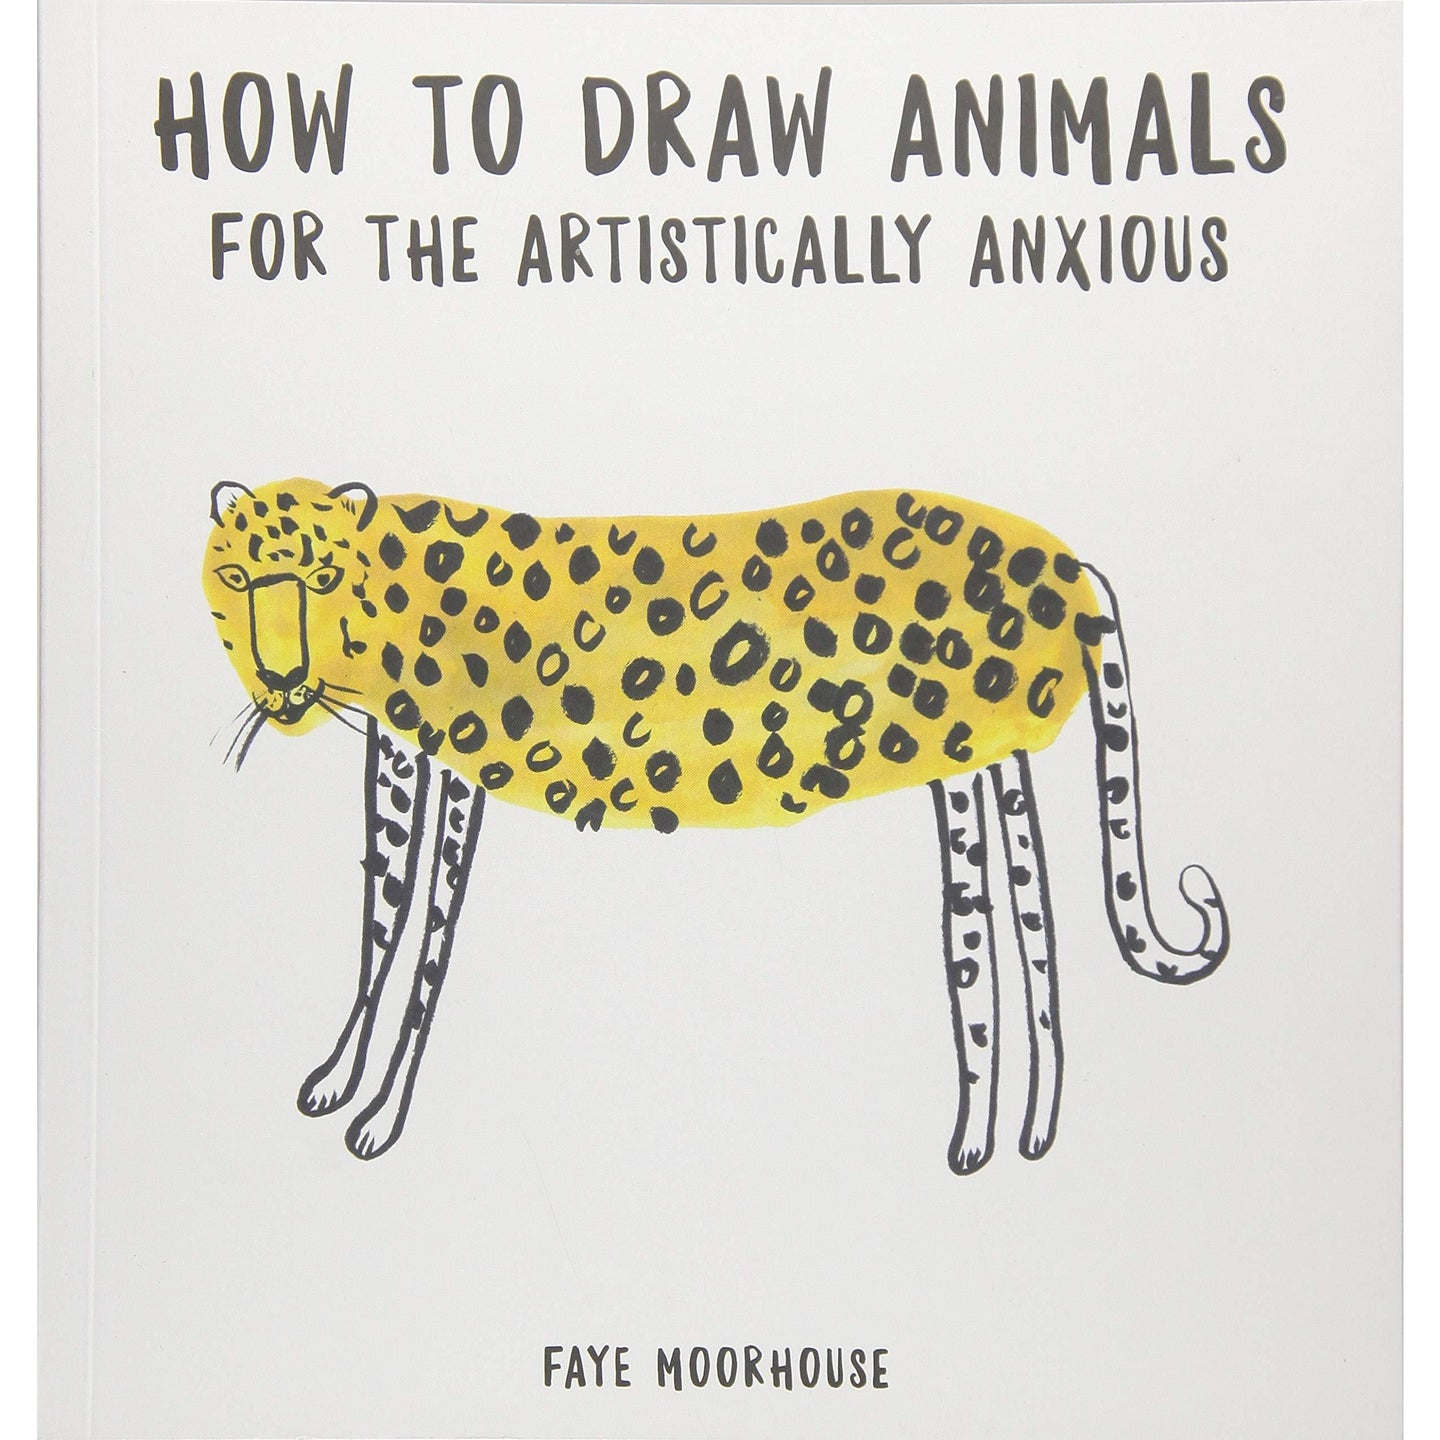 'How to Draw Animals for the Artistically Anxious' by Faye Moorhouse - Shop at the Old Fire Station